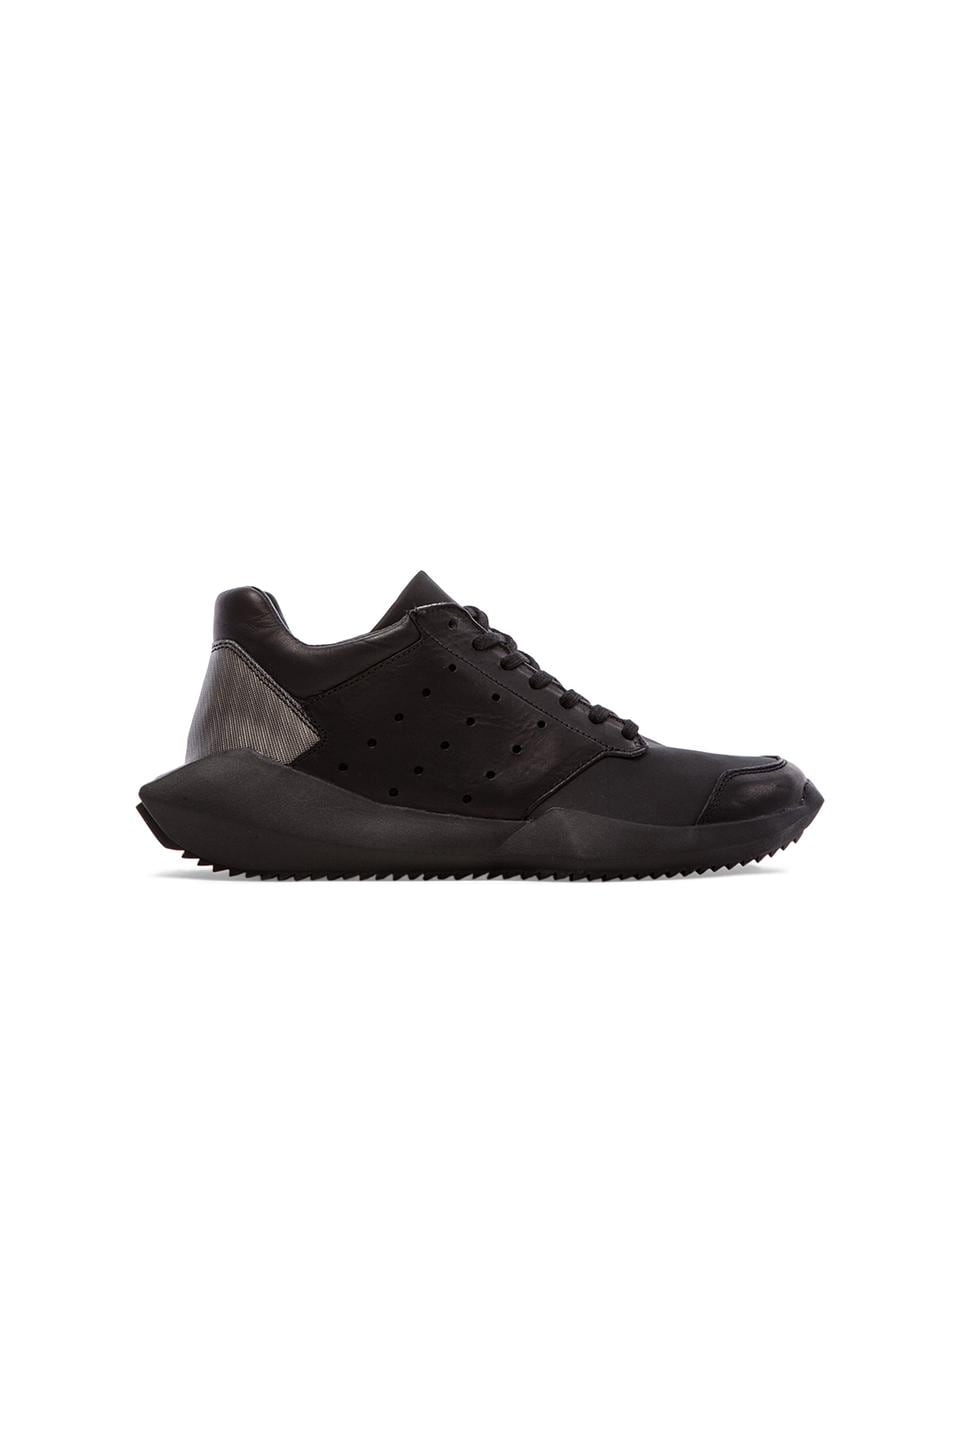 adidas by Rick Owens Tech Runner in Black